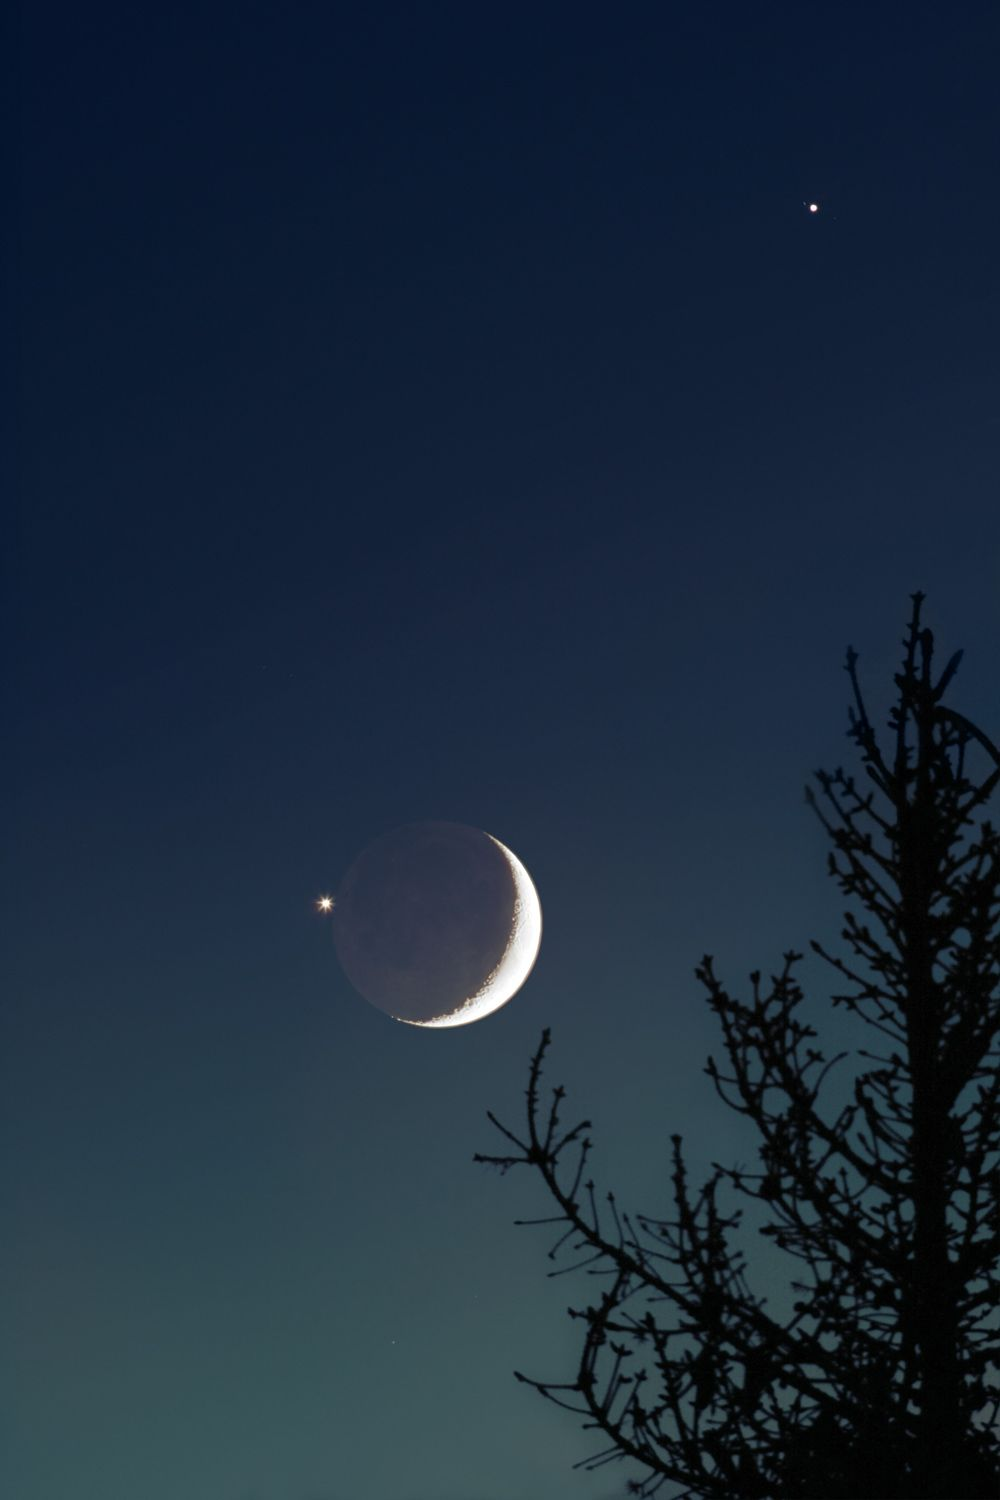 Moon with Venus and Jupiter | Space: The Final Frontier in